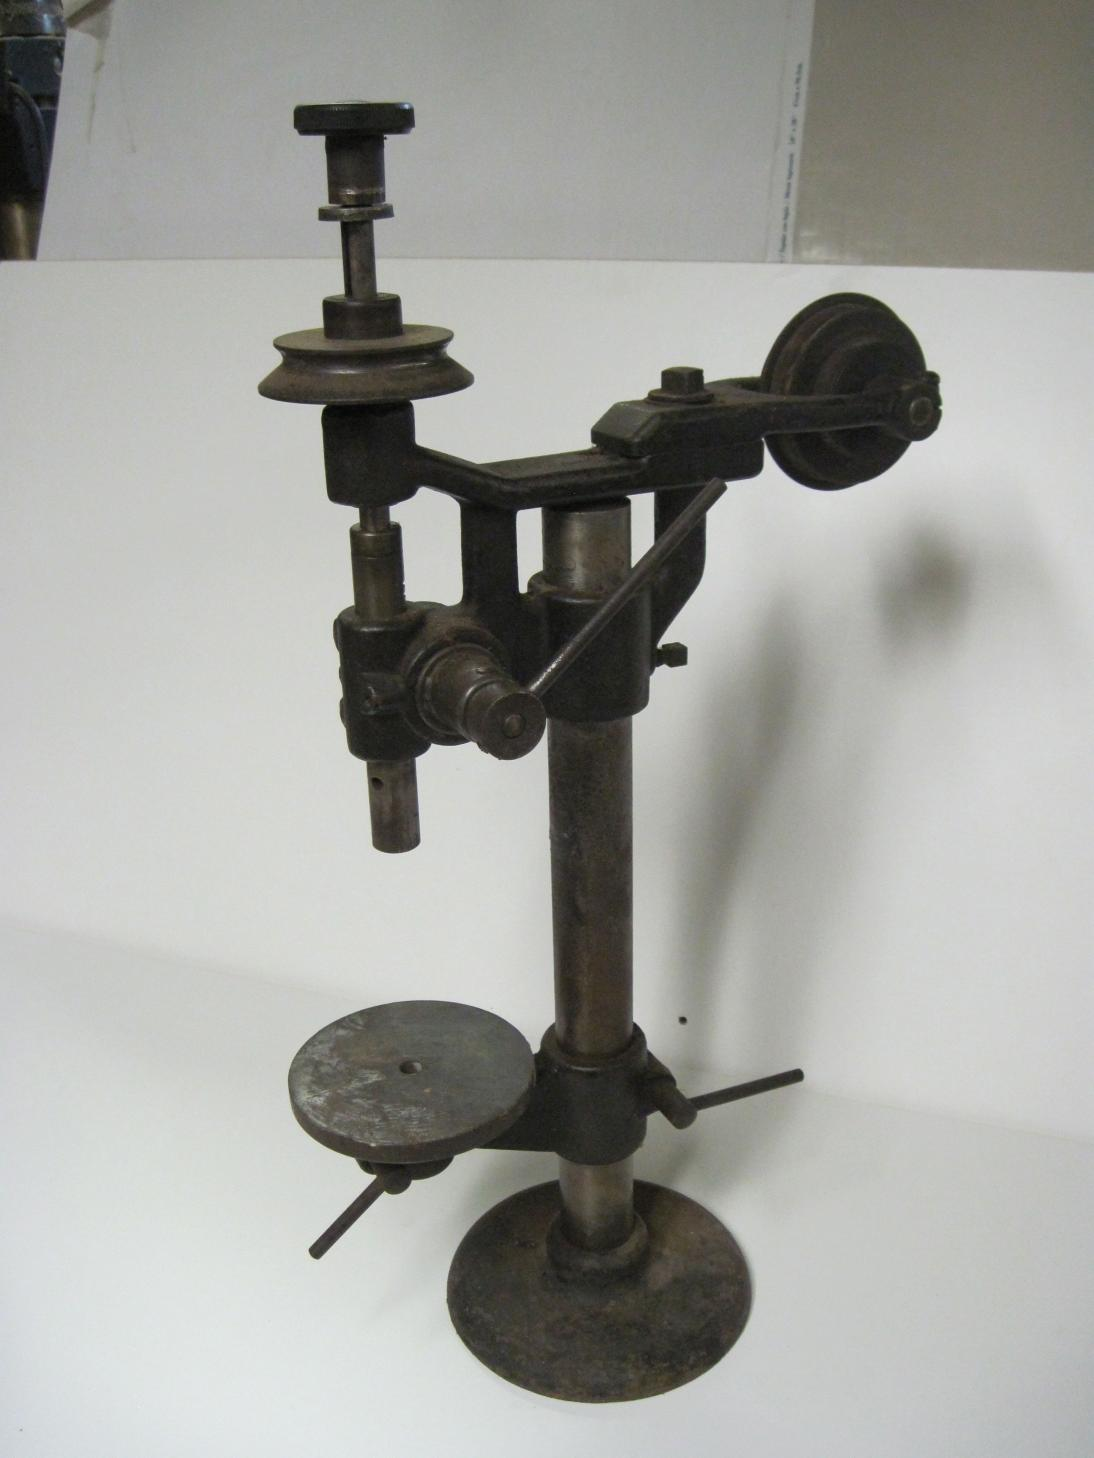 Old Bench Drill Press Please Identify